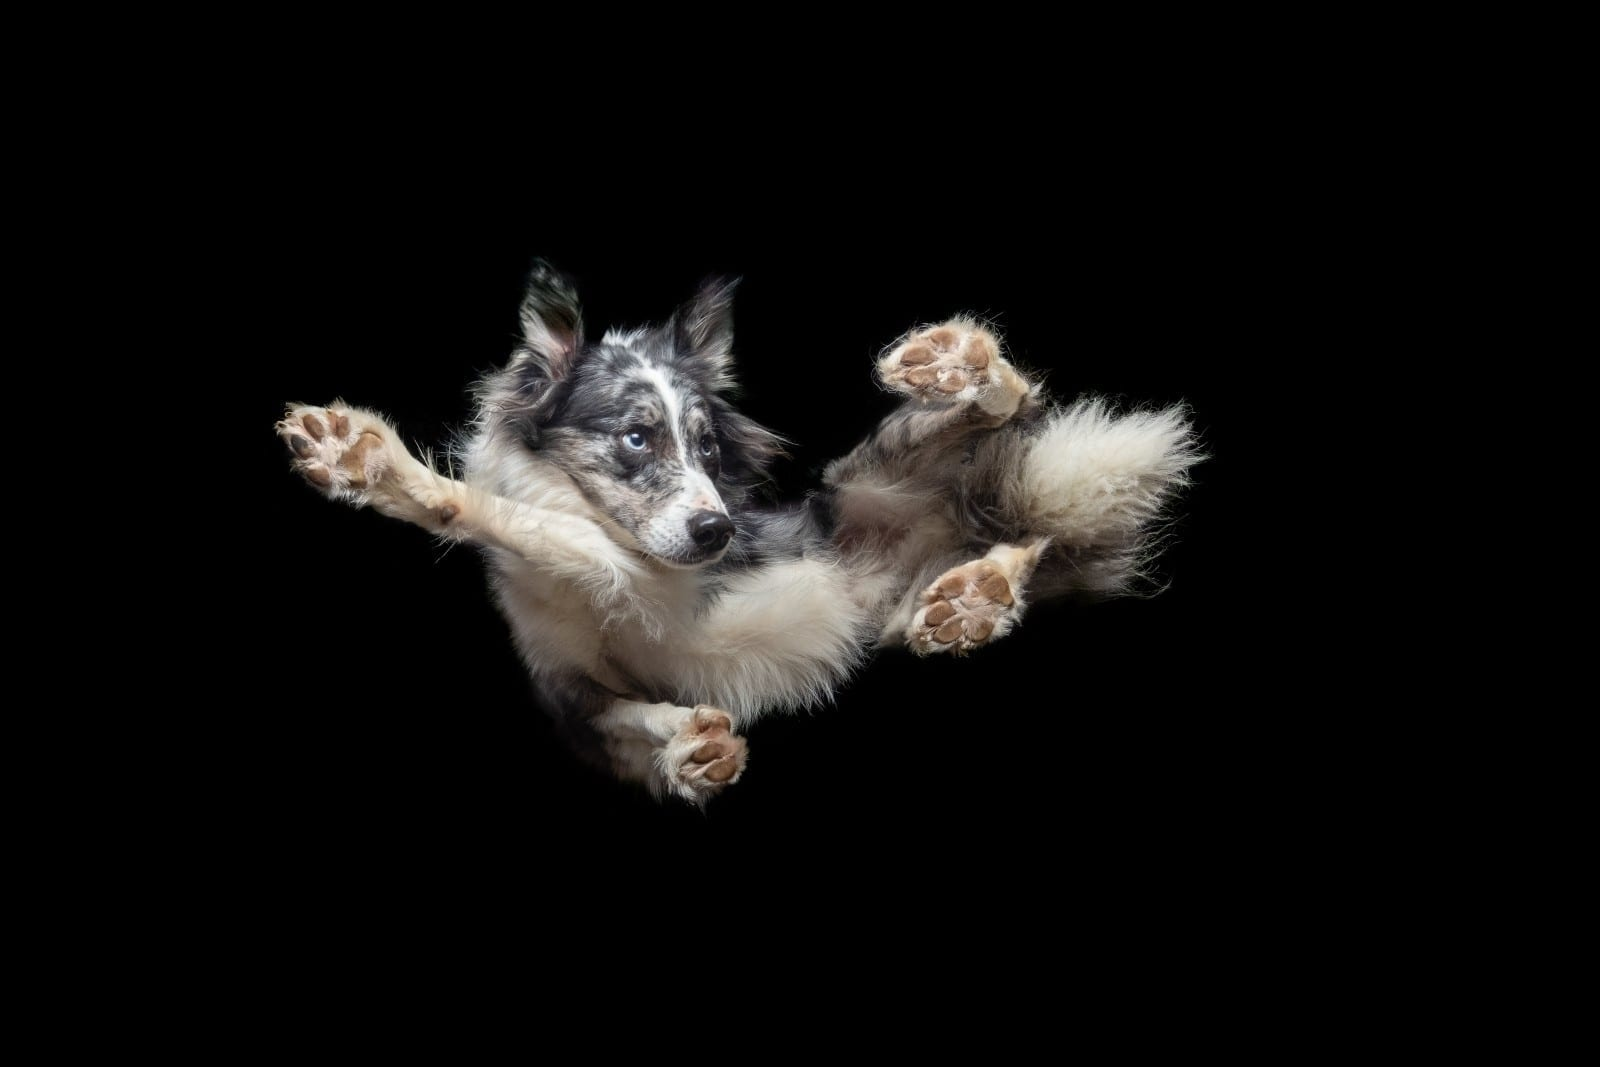 Pet Photographer Captures Series Of Hilarious Images Of Dogs 'Flying Through The Air'